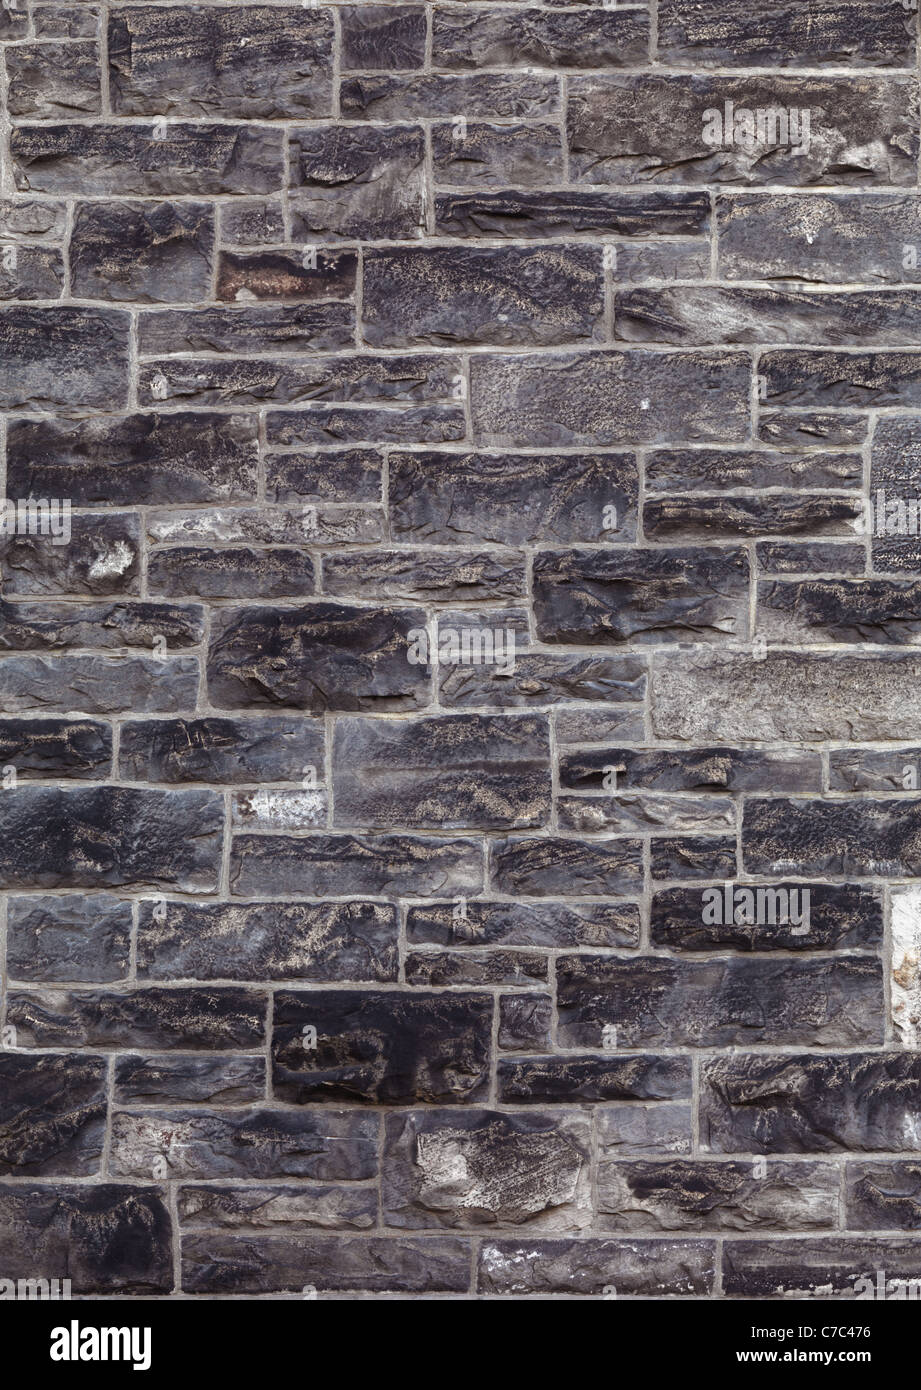 Old gothic architecture style stone wall texture background. High quality high resolution photo. - Stock Image